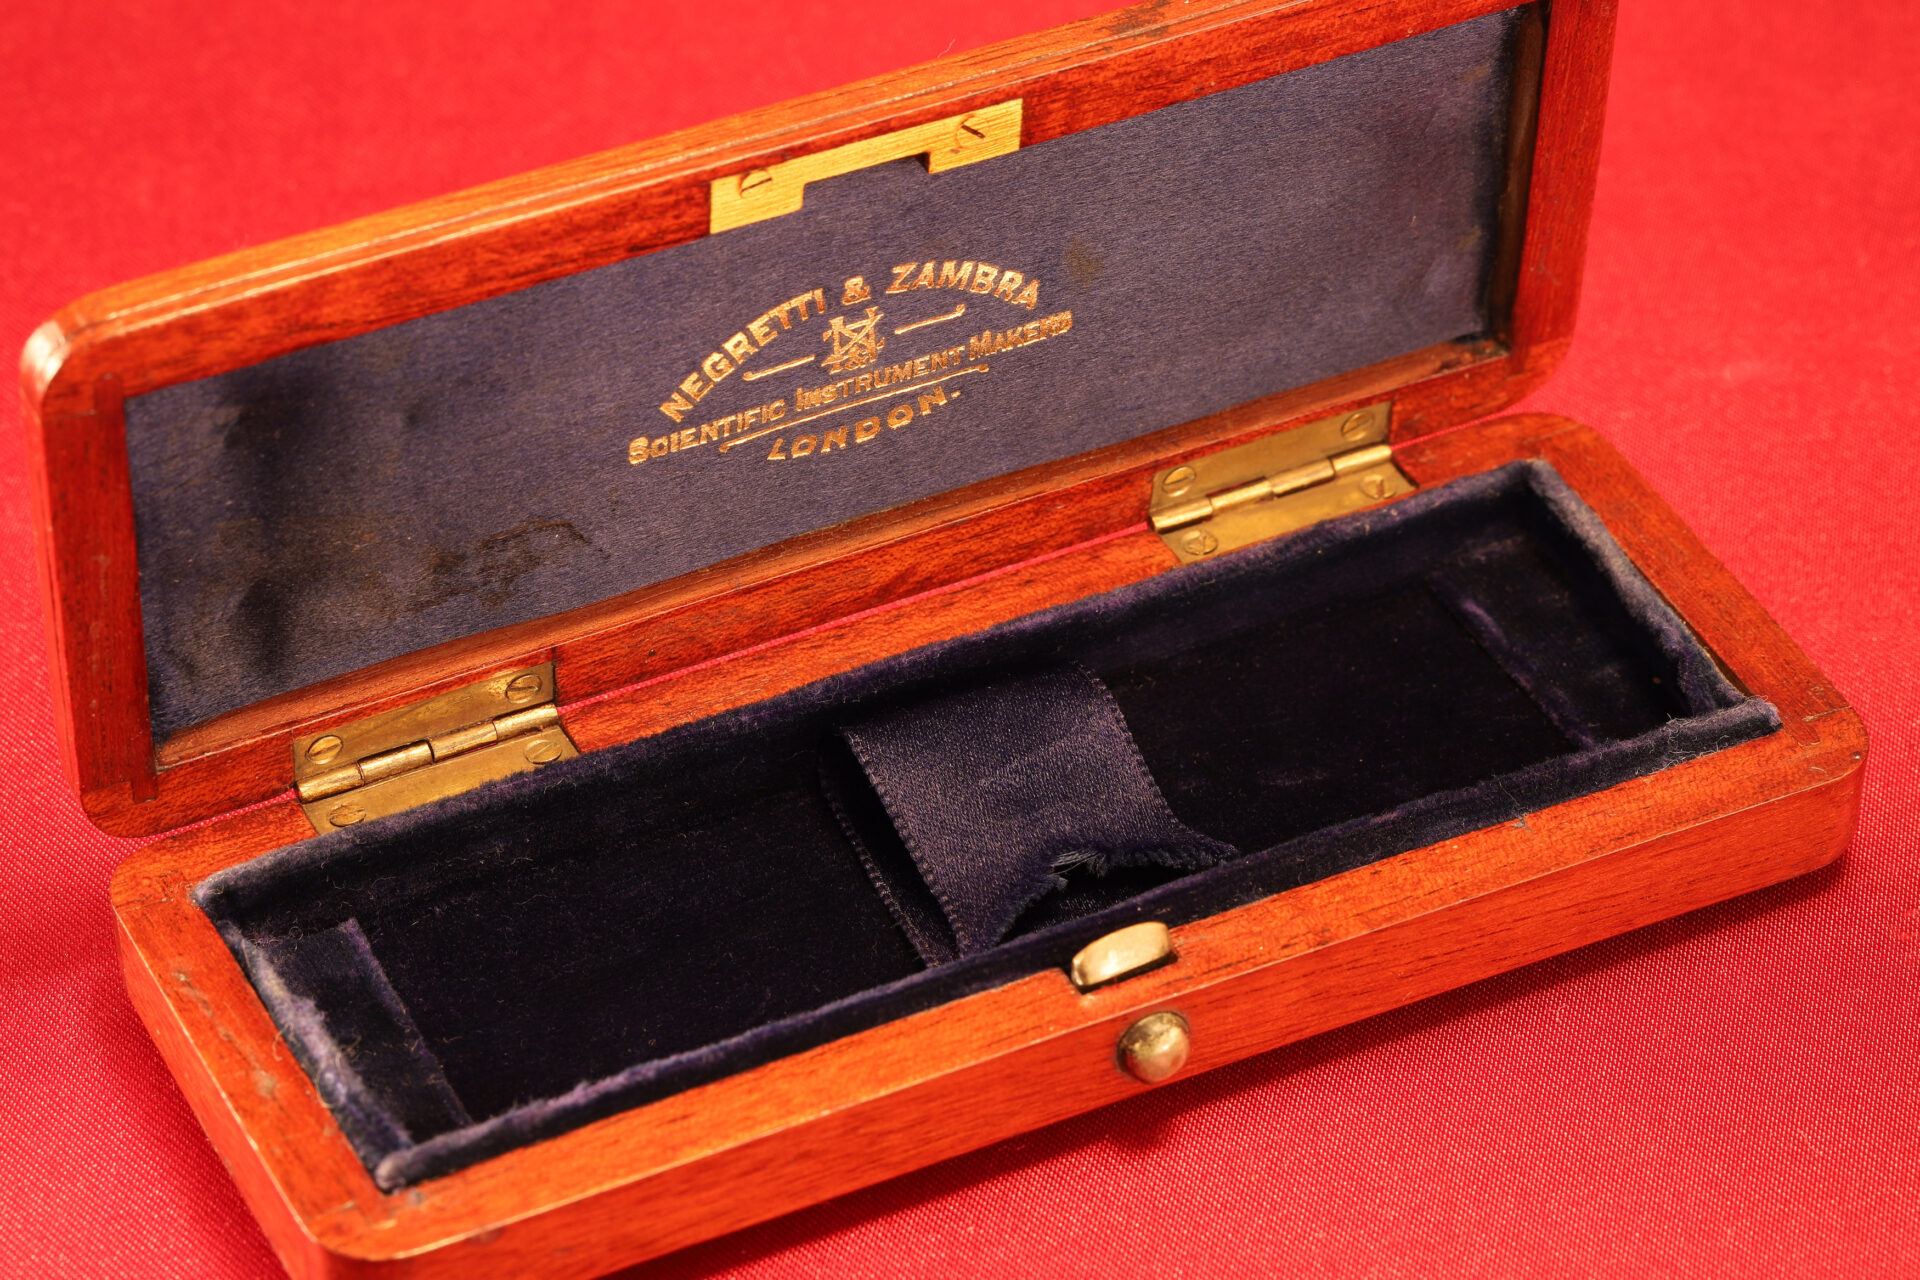 Image of open travel case for Negretti & Zambra Scientific Thermometers c1915 from lefthand side